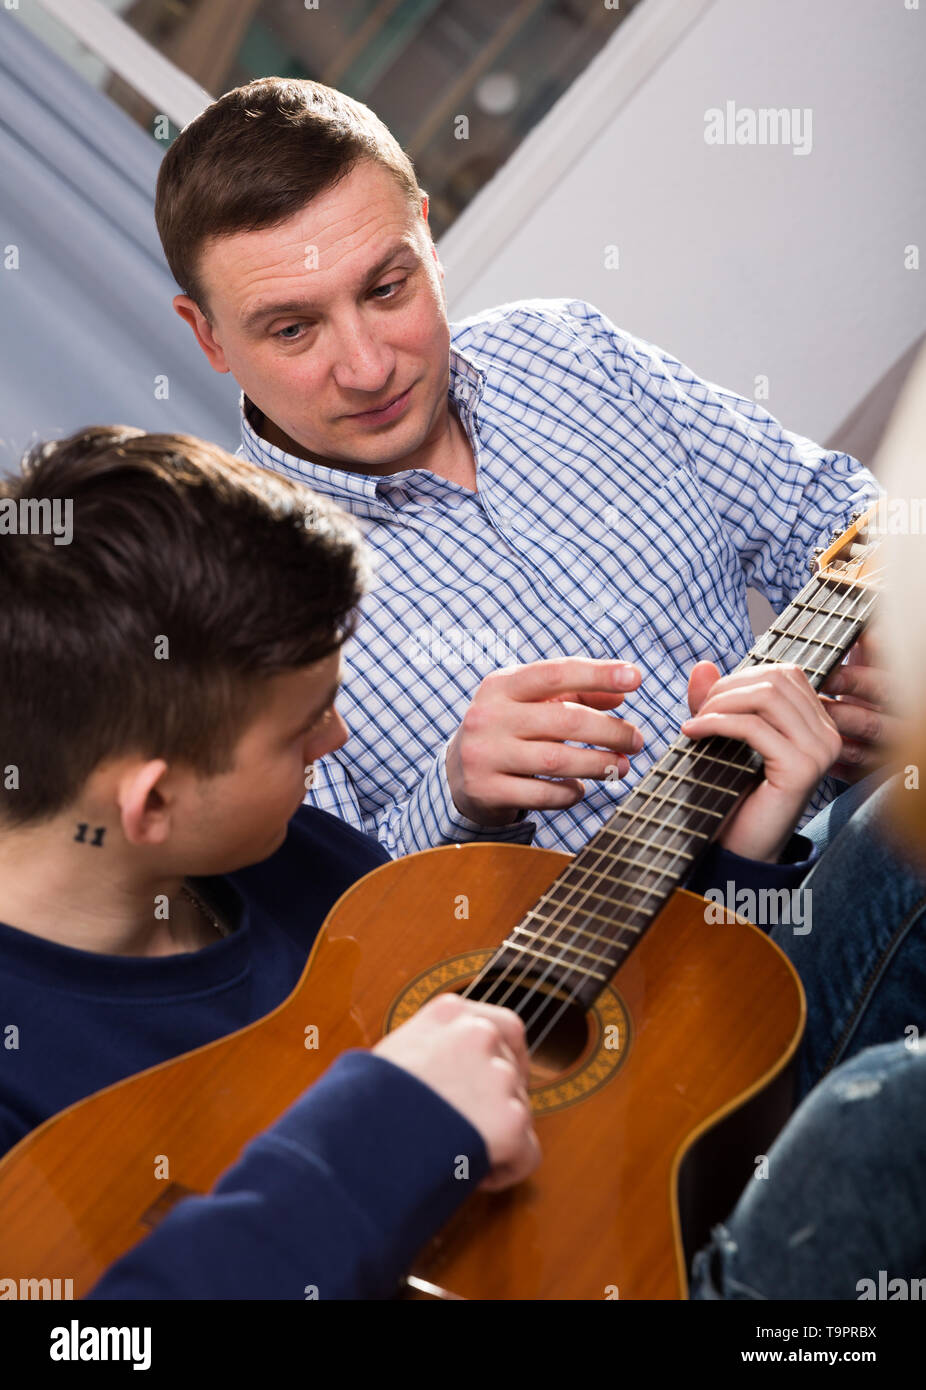 Man with his adult son are playing on guitar together at the home. - Stock Image